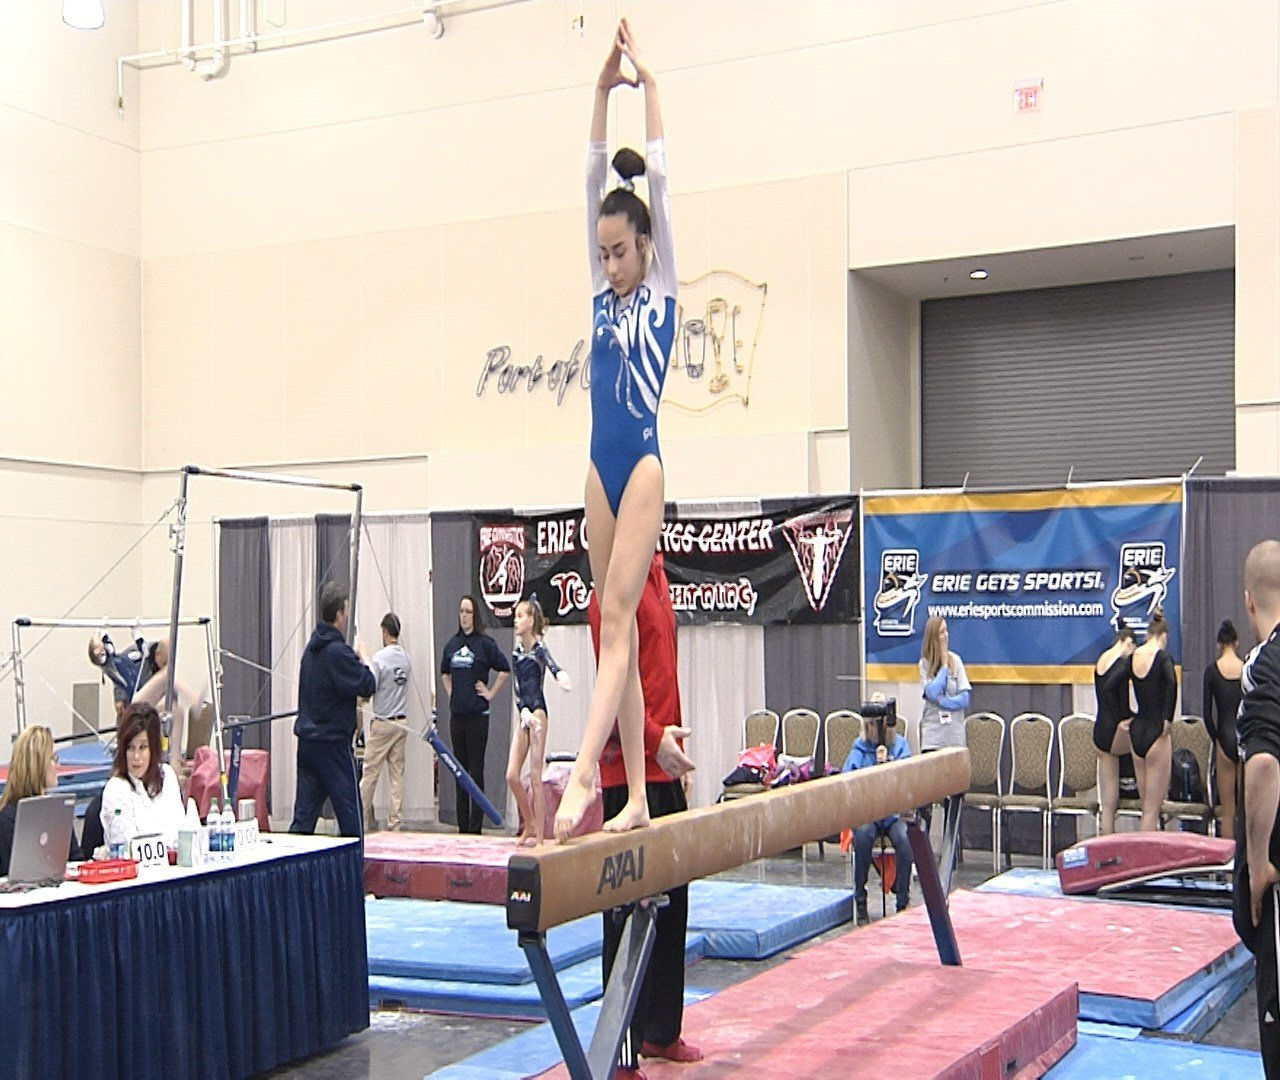 stars and stripes gymnastics meet results florida